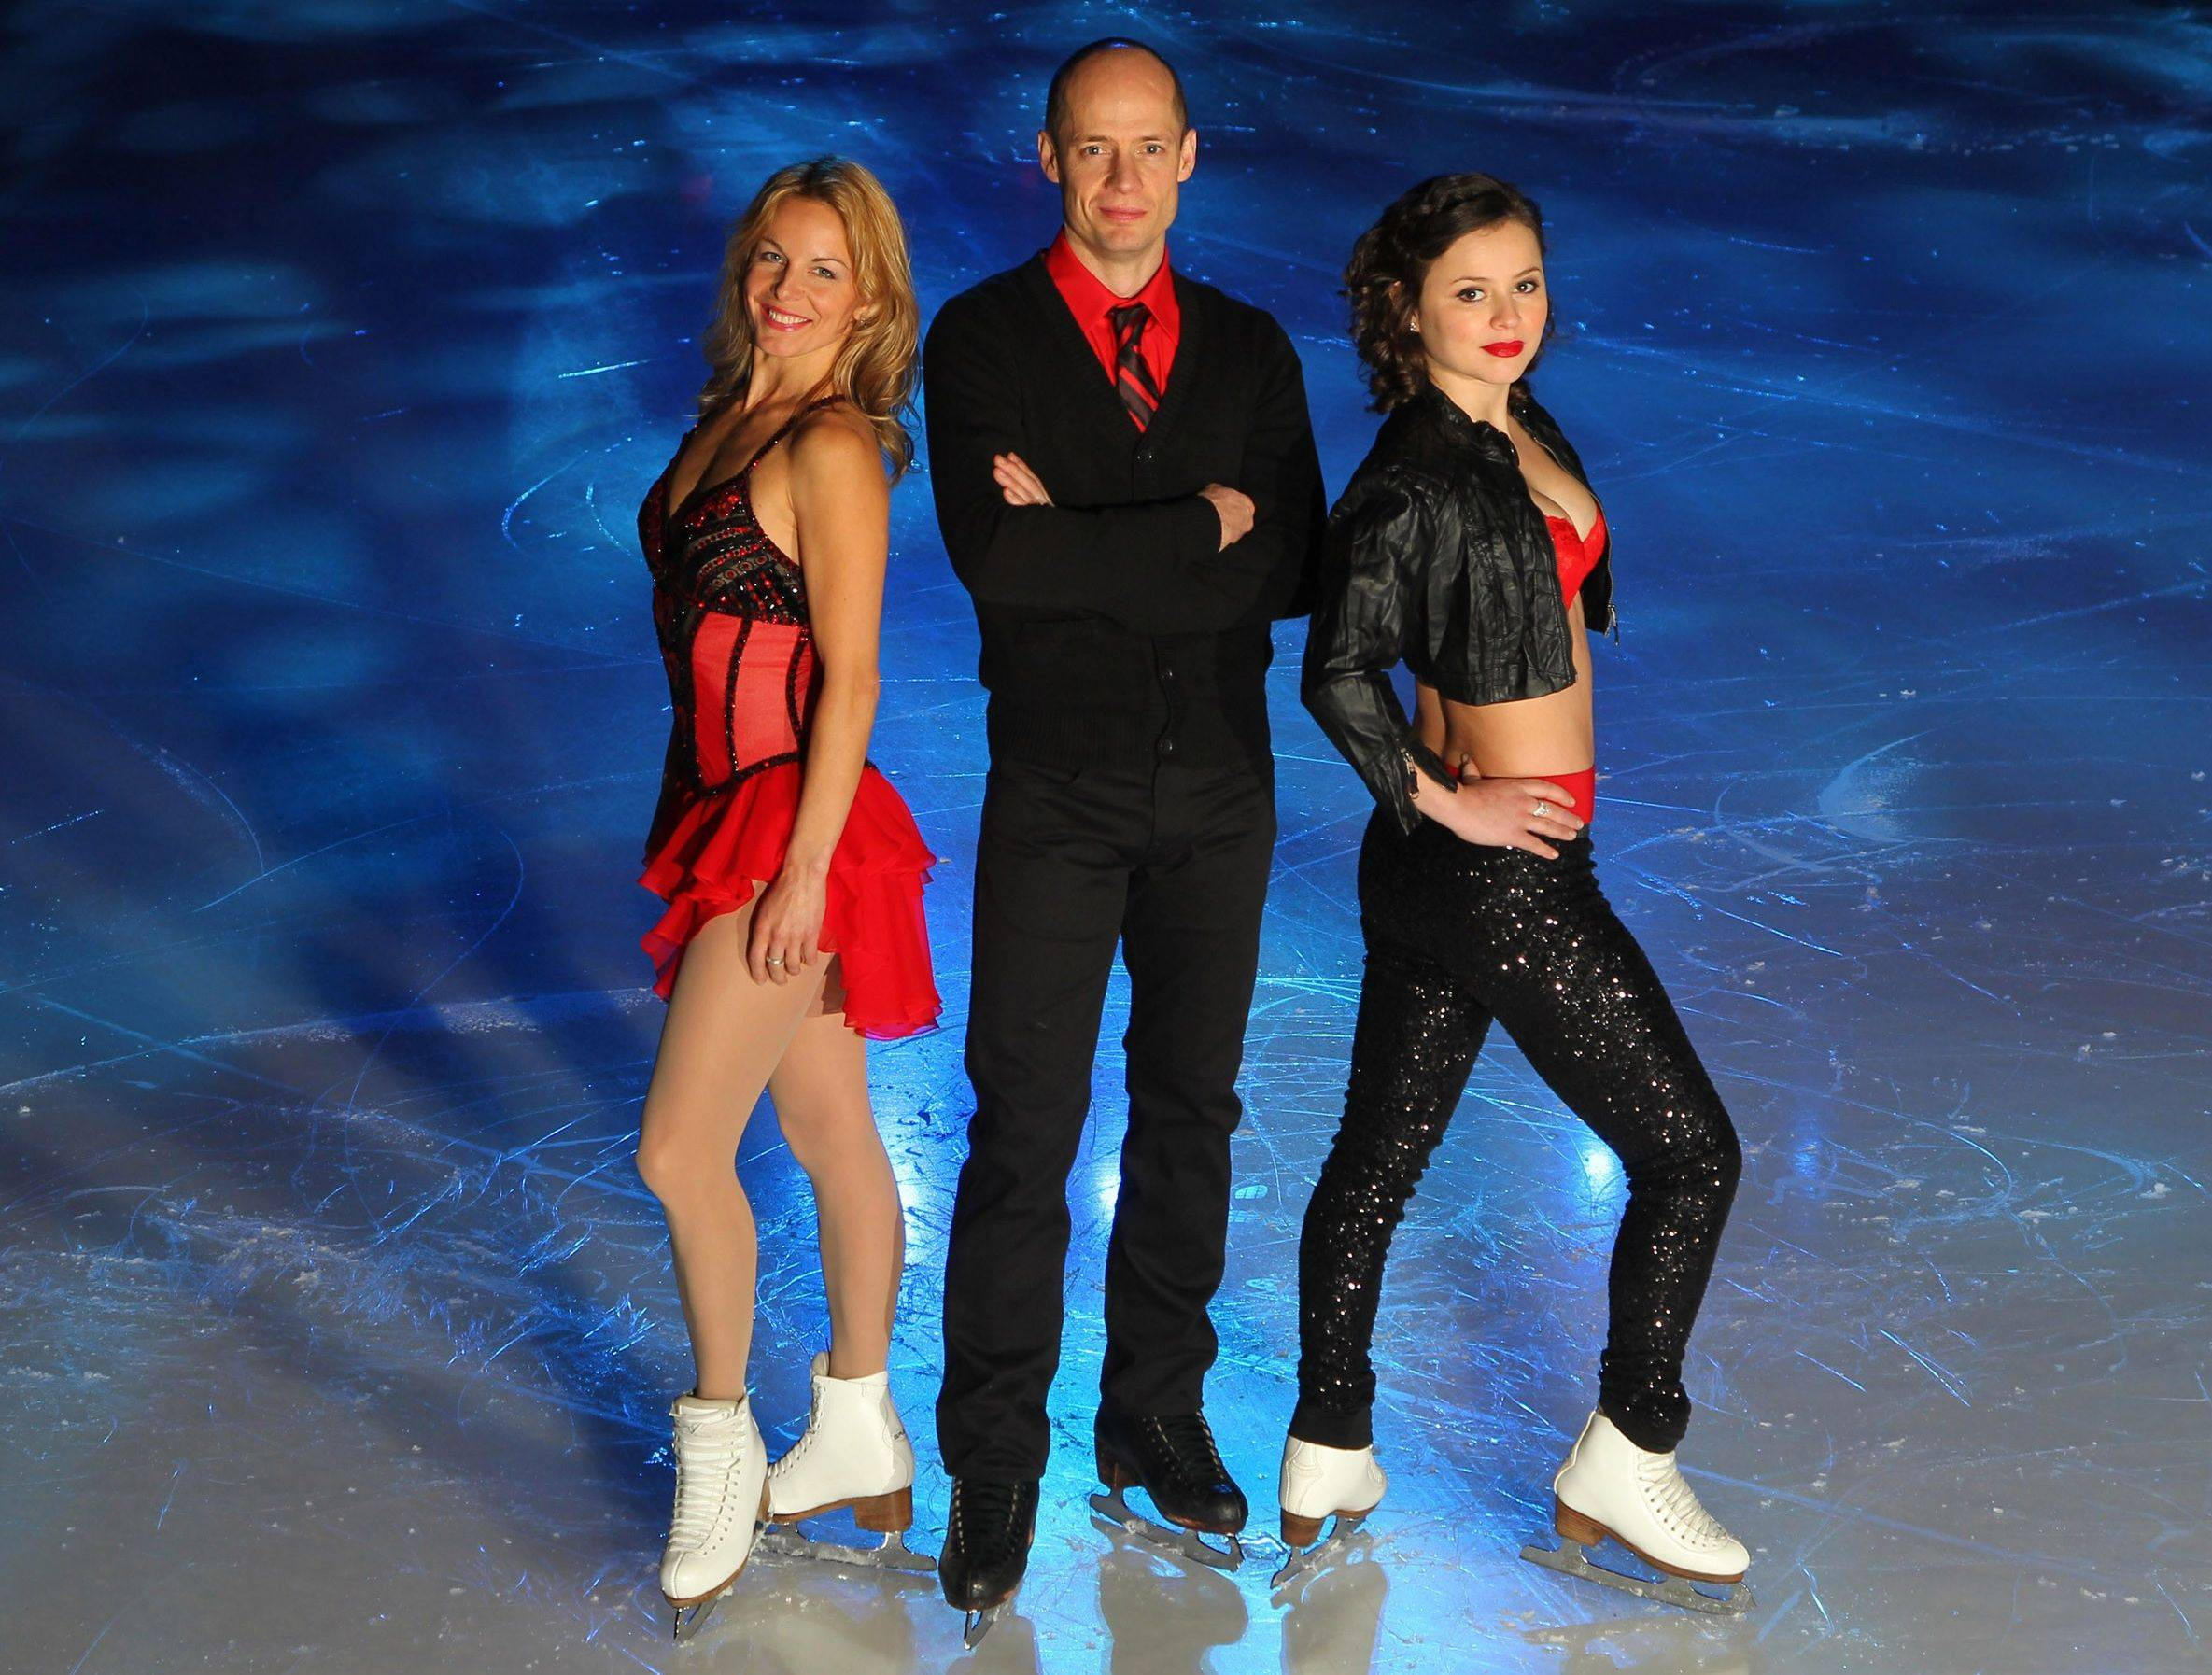 Ekaterina Gordeeva, Kurt Browning and Sasha Cohen appear in the 2012 Stars on Ice Tour, which comes to the Allstate Arena in Rosemont.